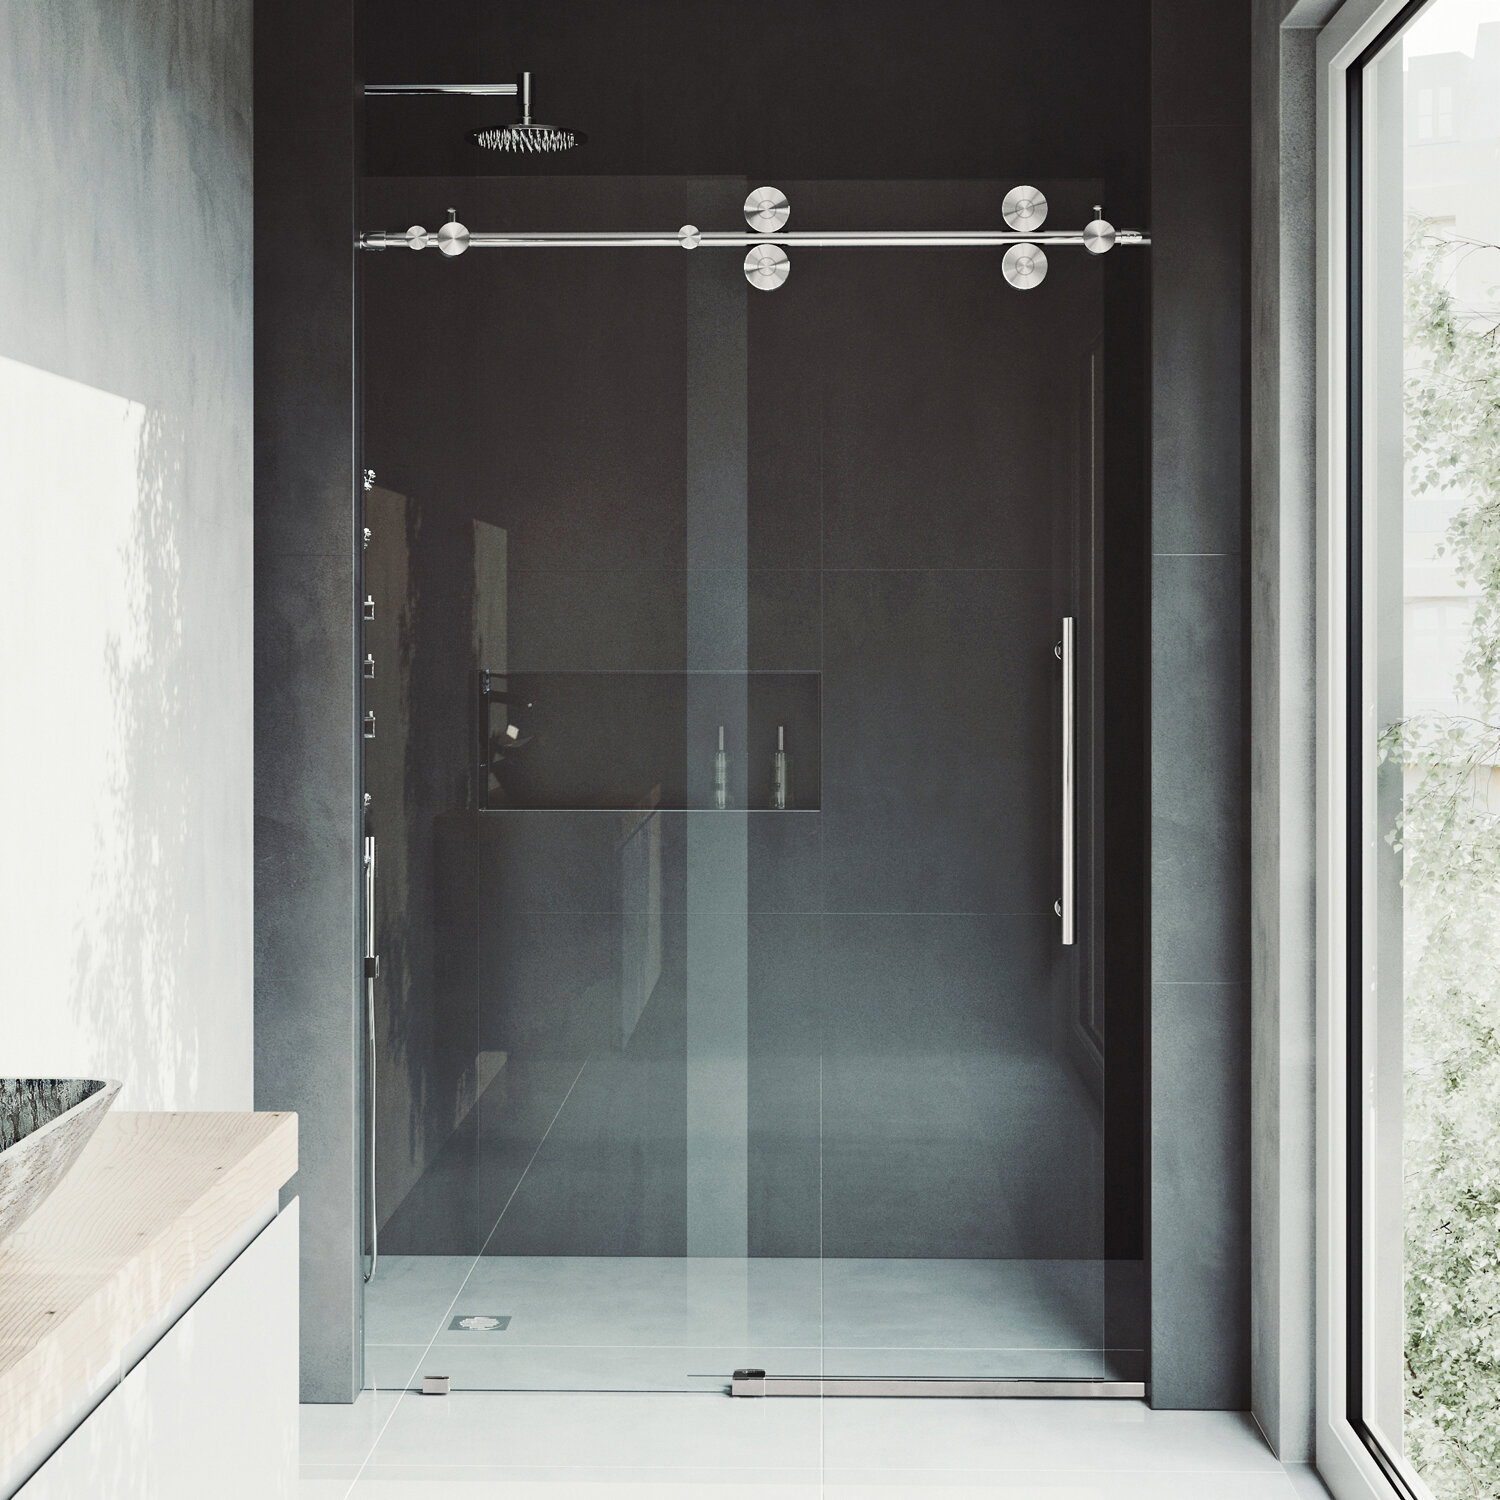 Elan 60 X 74 Single Sliding Frameless Shower Door With Rollerdisk Technology